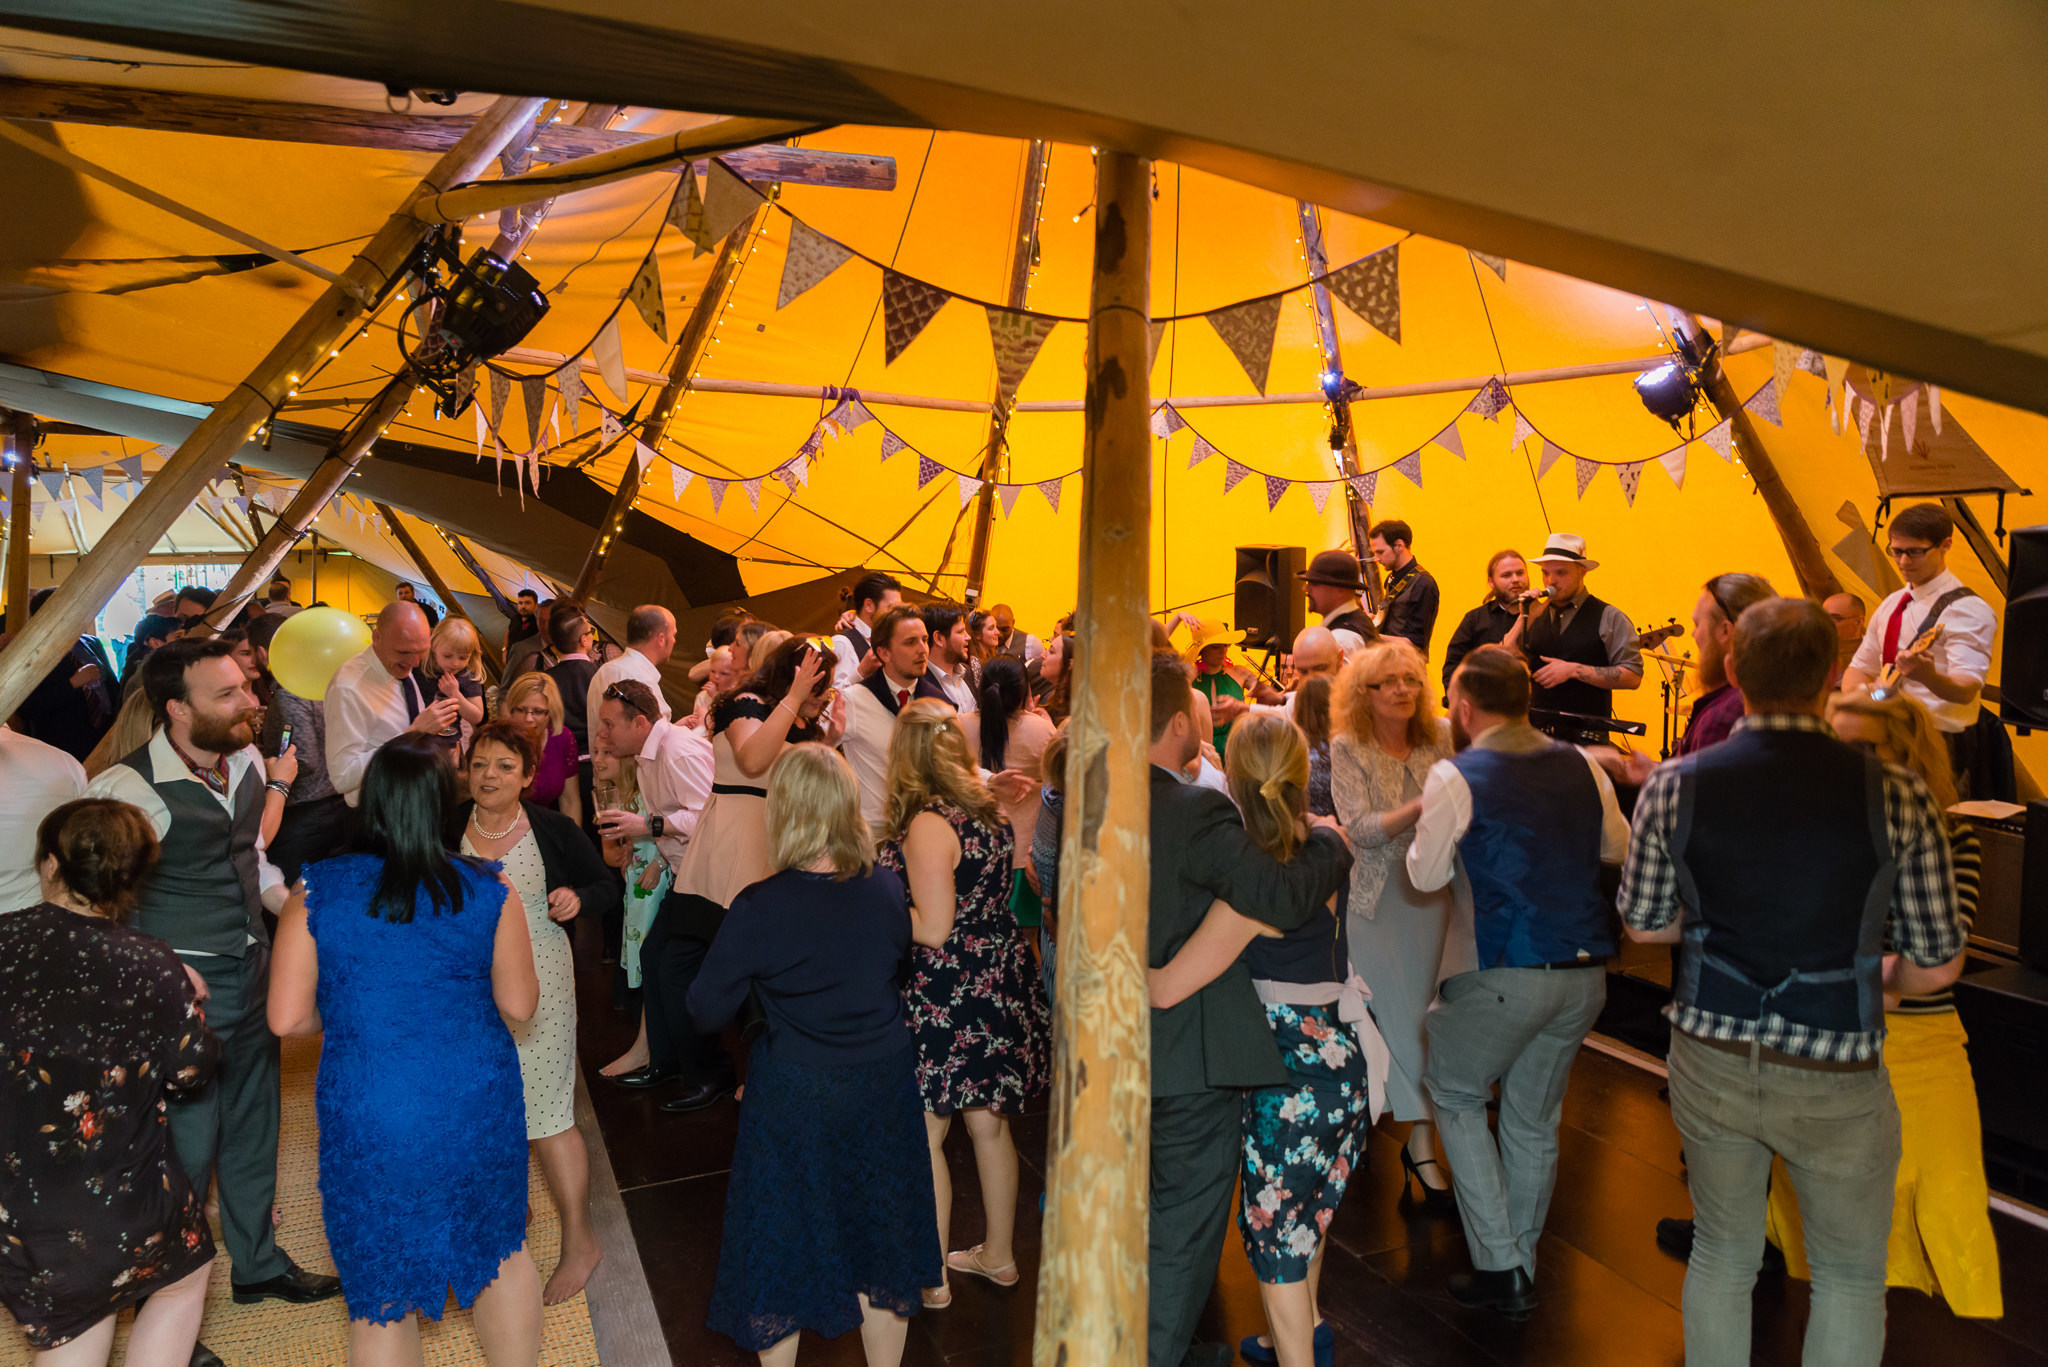 A packed dance floor during the tipi wedding